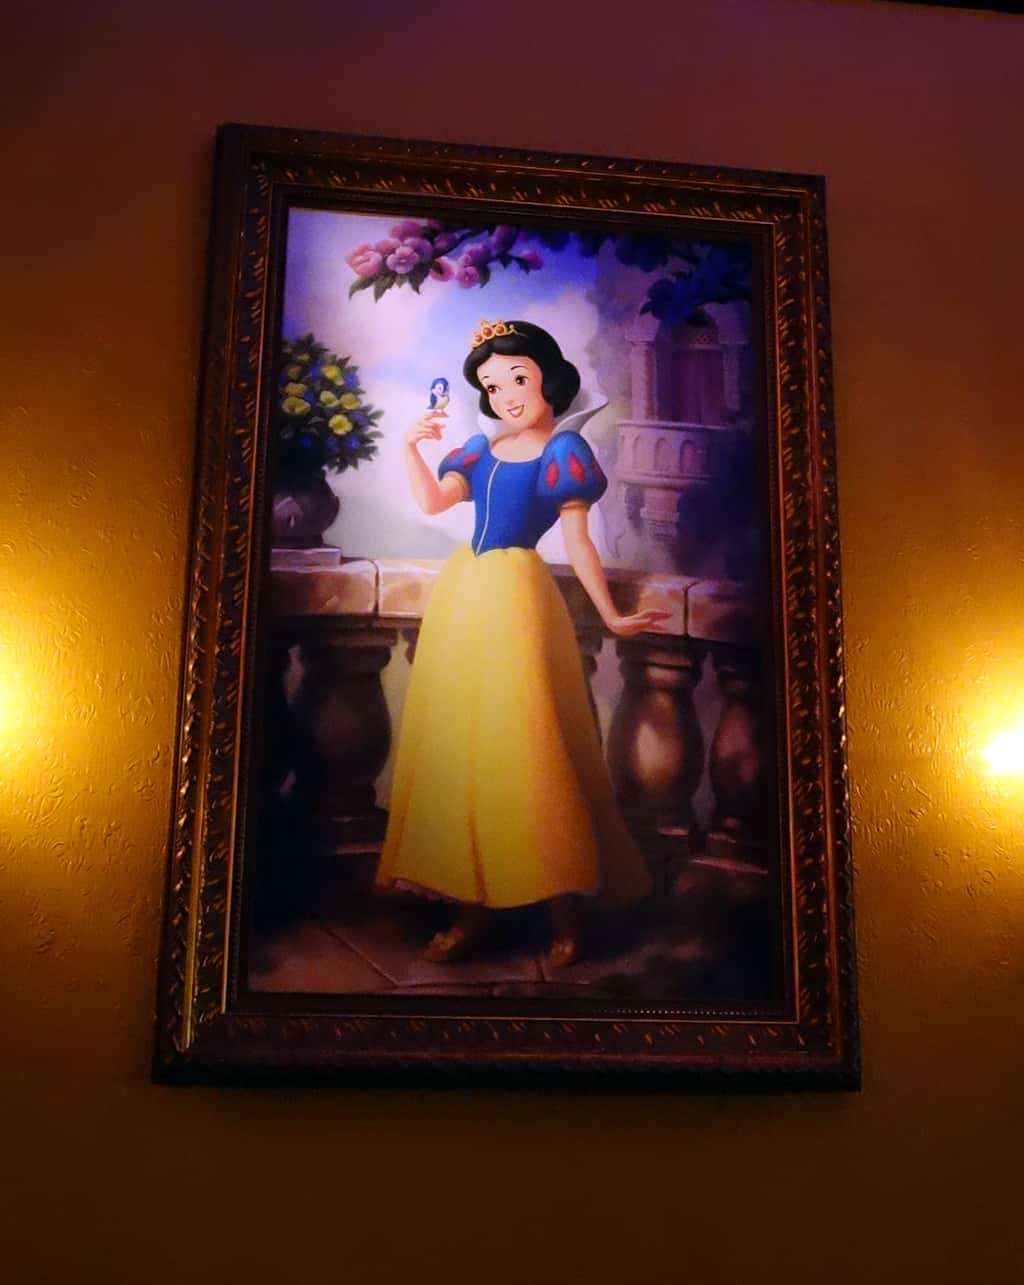 To meet Snow White, get in the Rapunzel line!